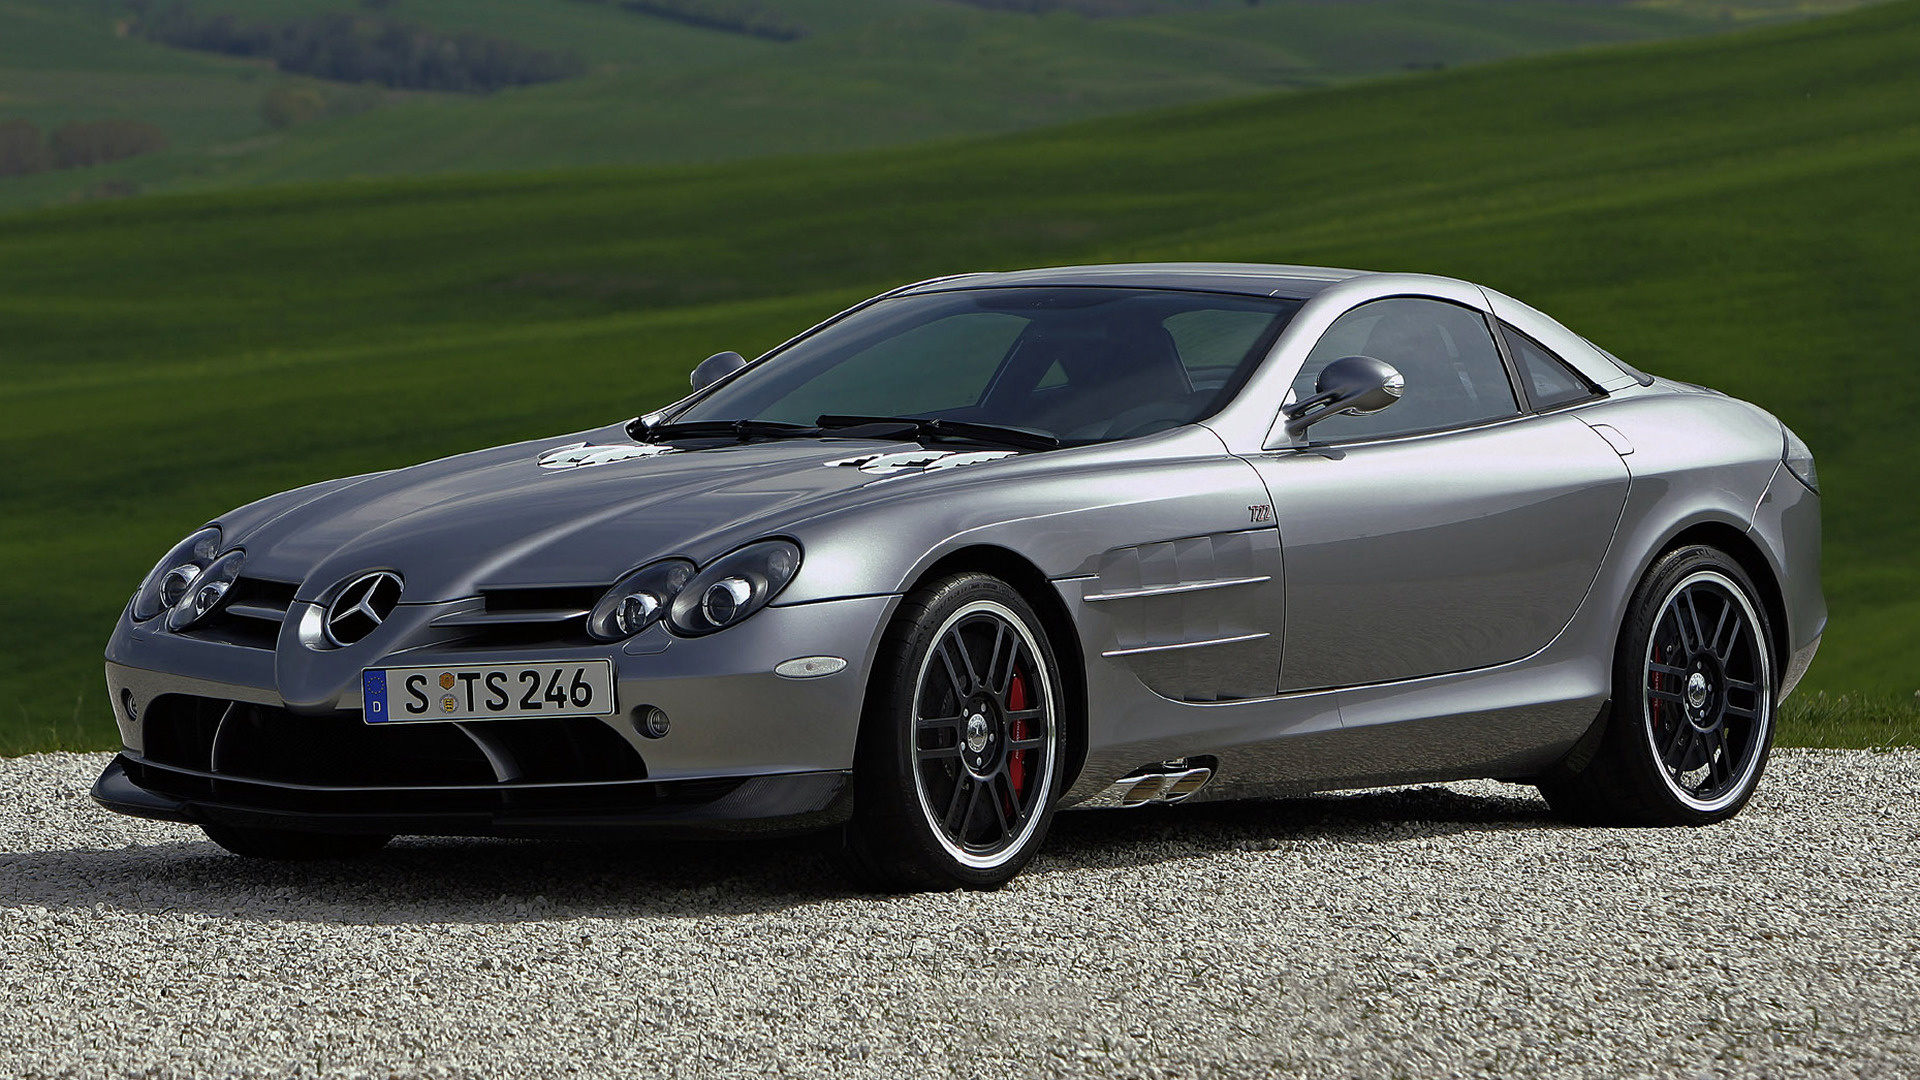 Mercedes-Benz SLR McLaren Wallpapers Images Photos ...